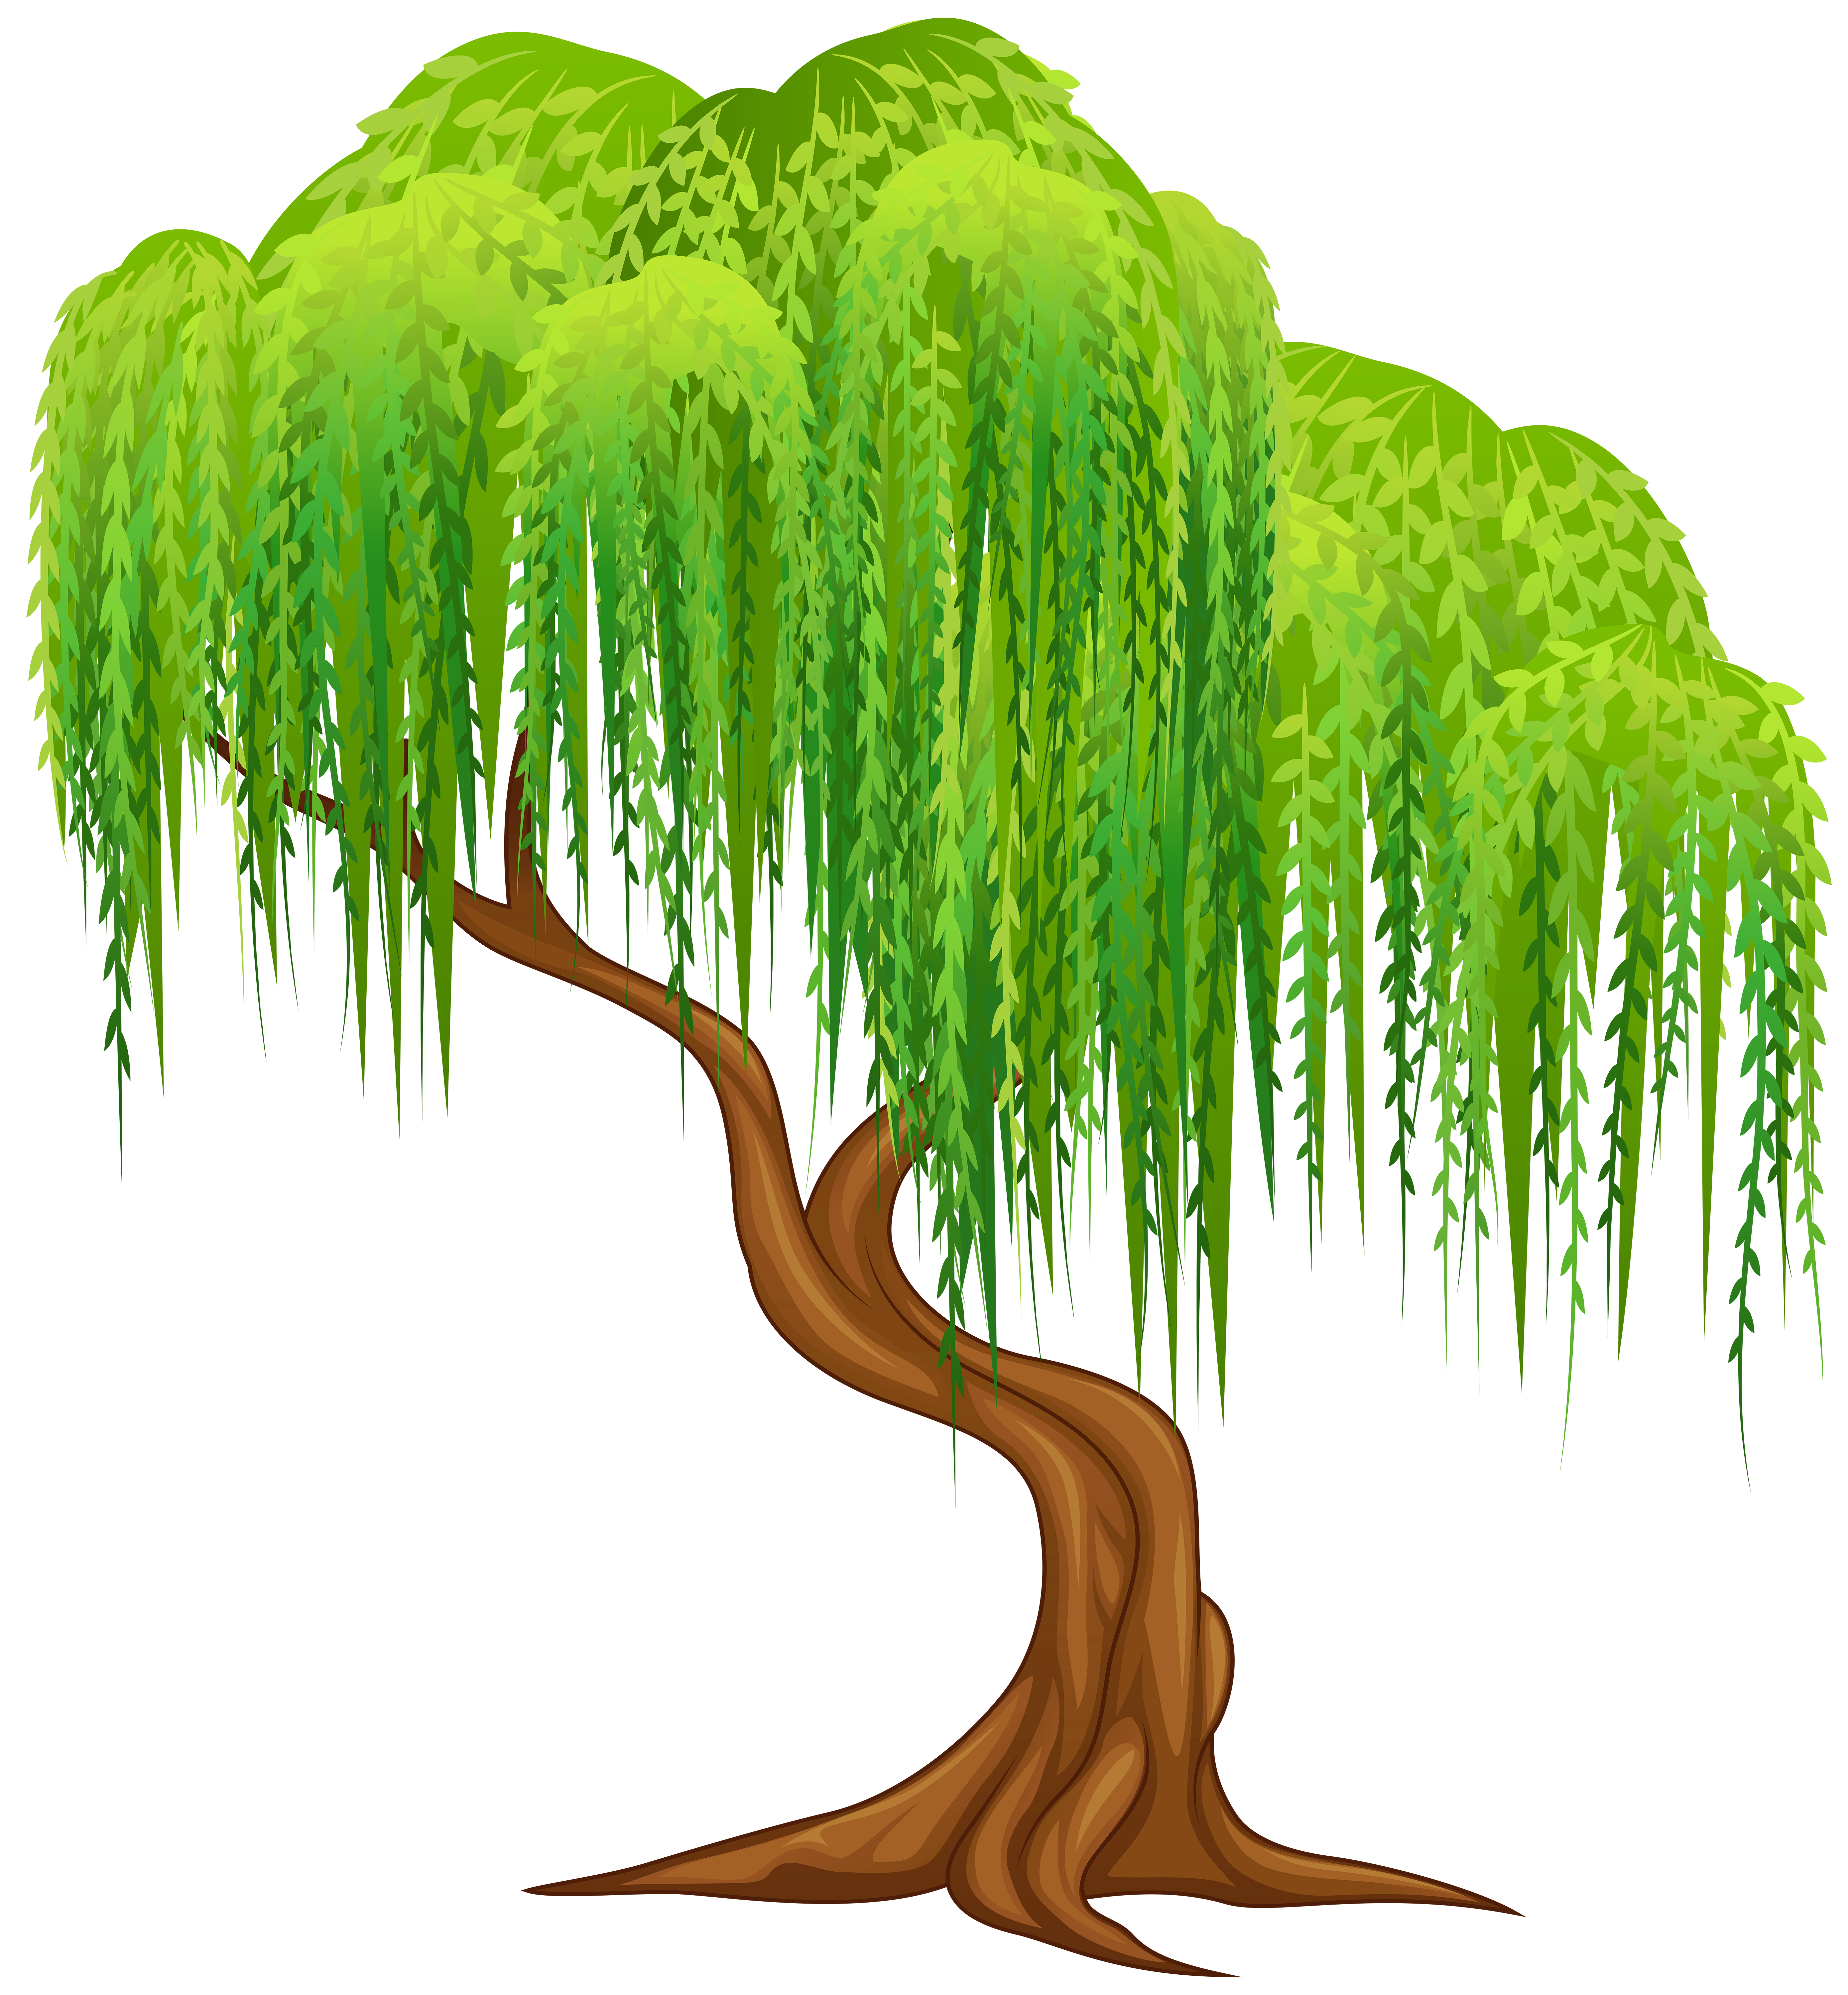 Tree cross clipart clipart royalty free library 28+ Collection of Willow Clipart | High quality, free cliparts ... clipart royalty free library